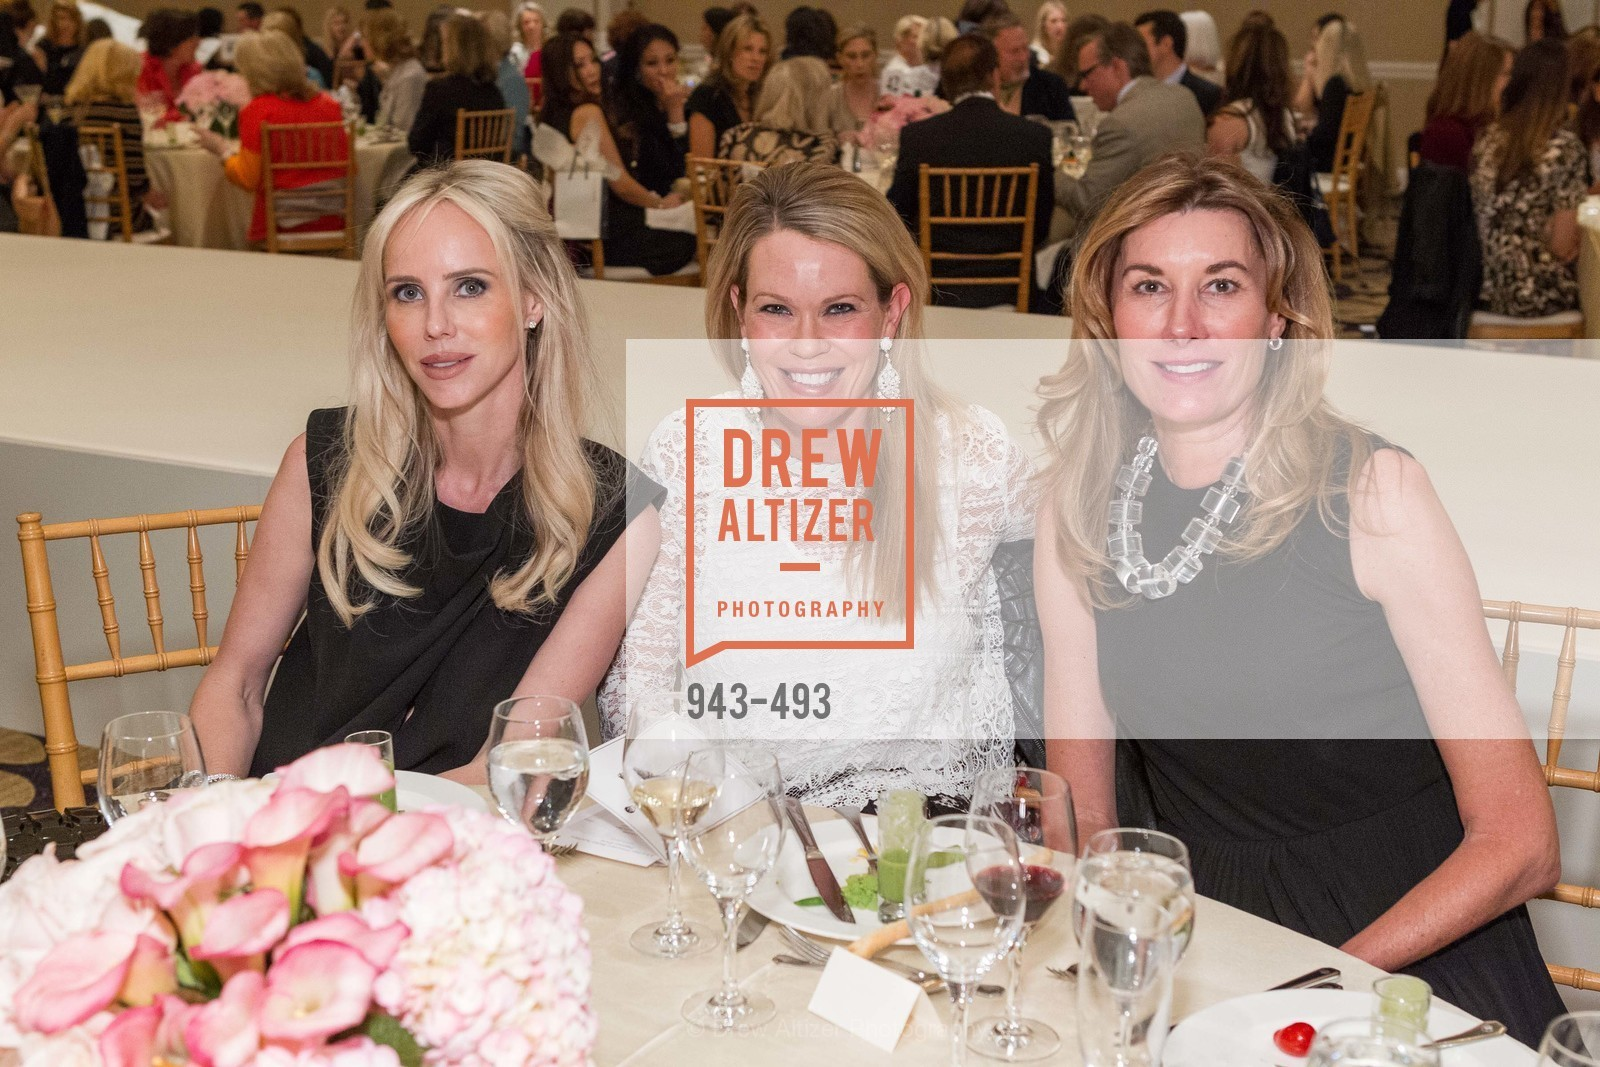 Vanessa Getty, Stephanie Tuttle, Susan Dunlevy, SAN FRANCISCO BALLET AUXULIARY 2014 Fashion Show, US. The Fairmont, April 3rd, 2014,Drew Altizer, Drew Altizer Photography, full-service agency, private events, San Francisco photographer, photographer california